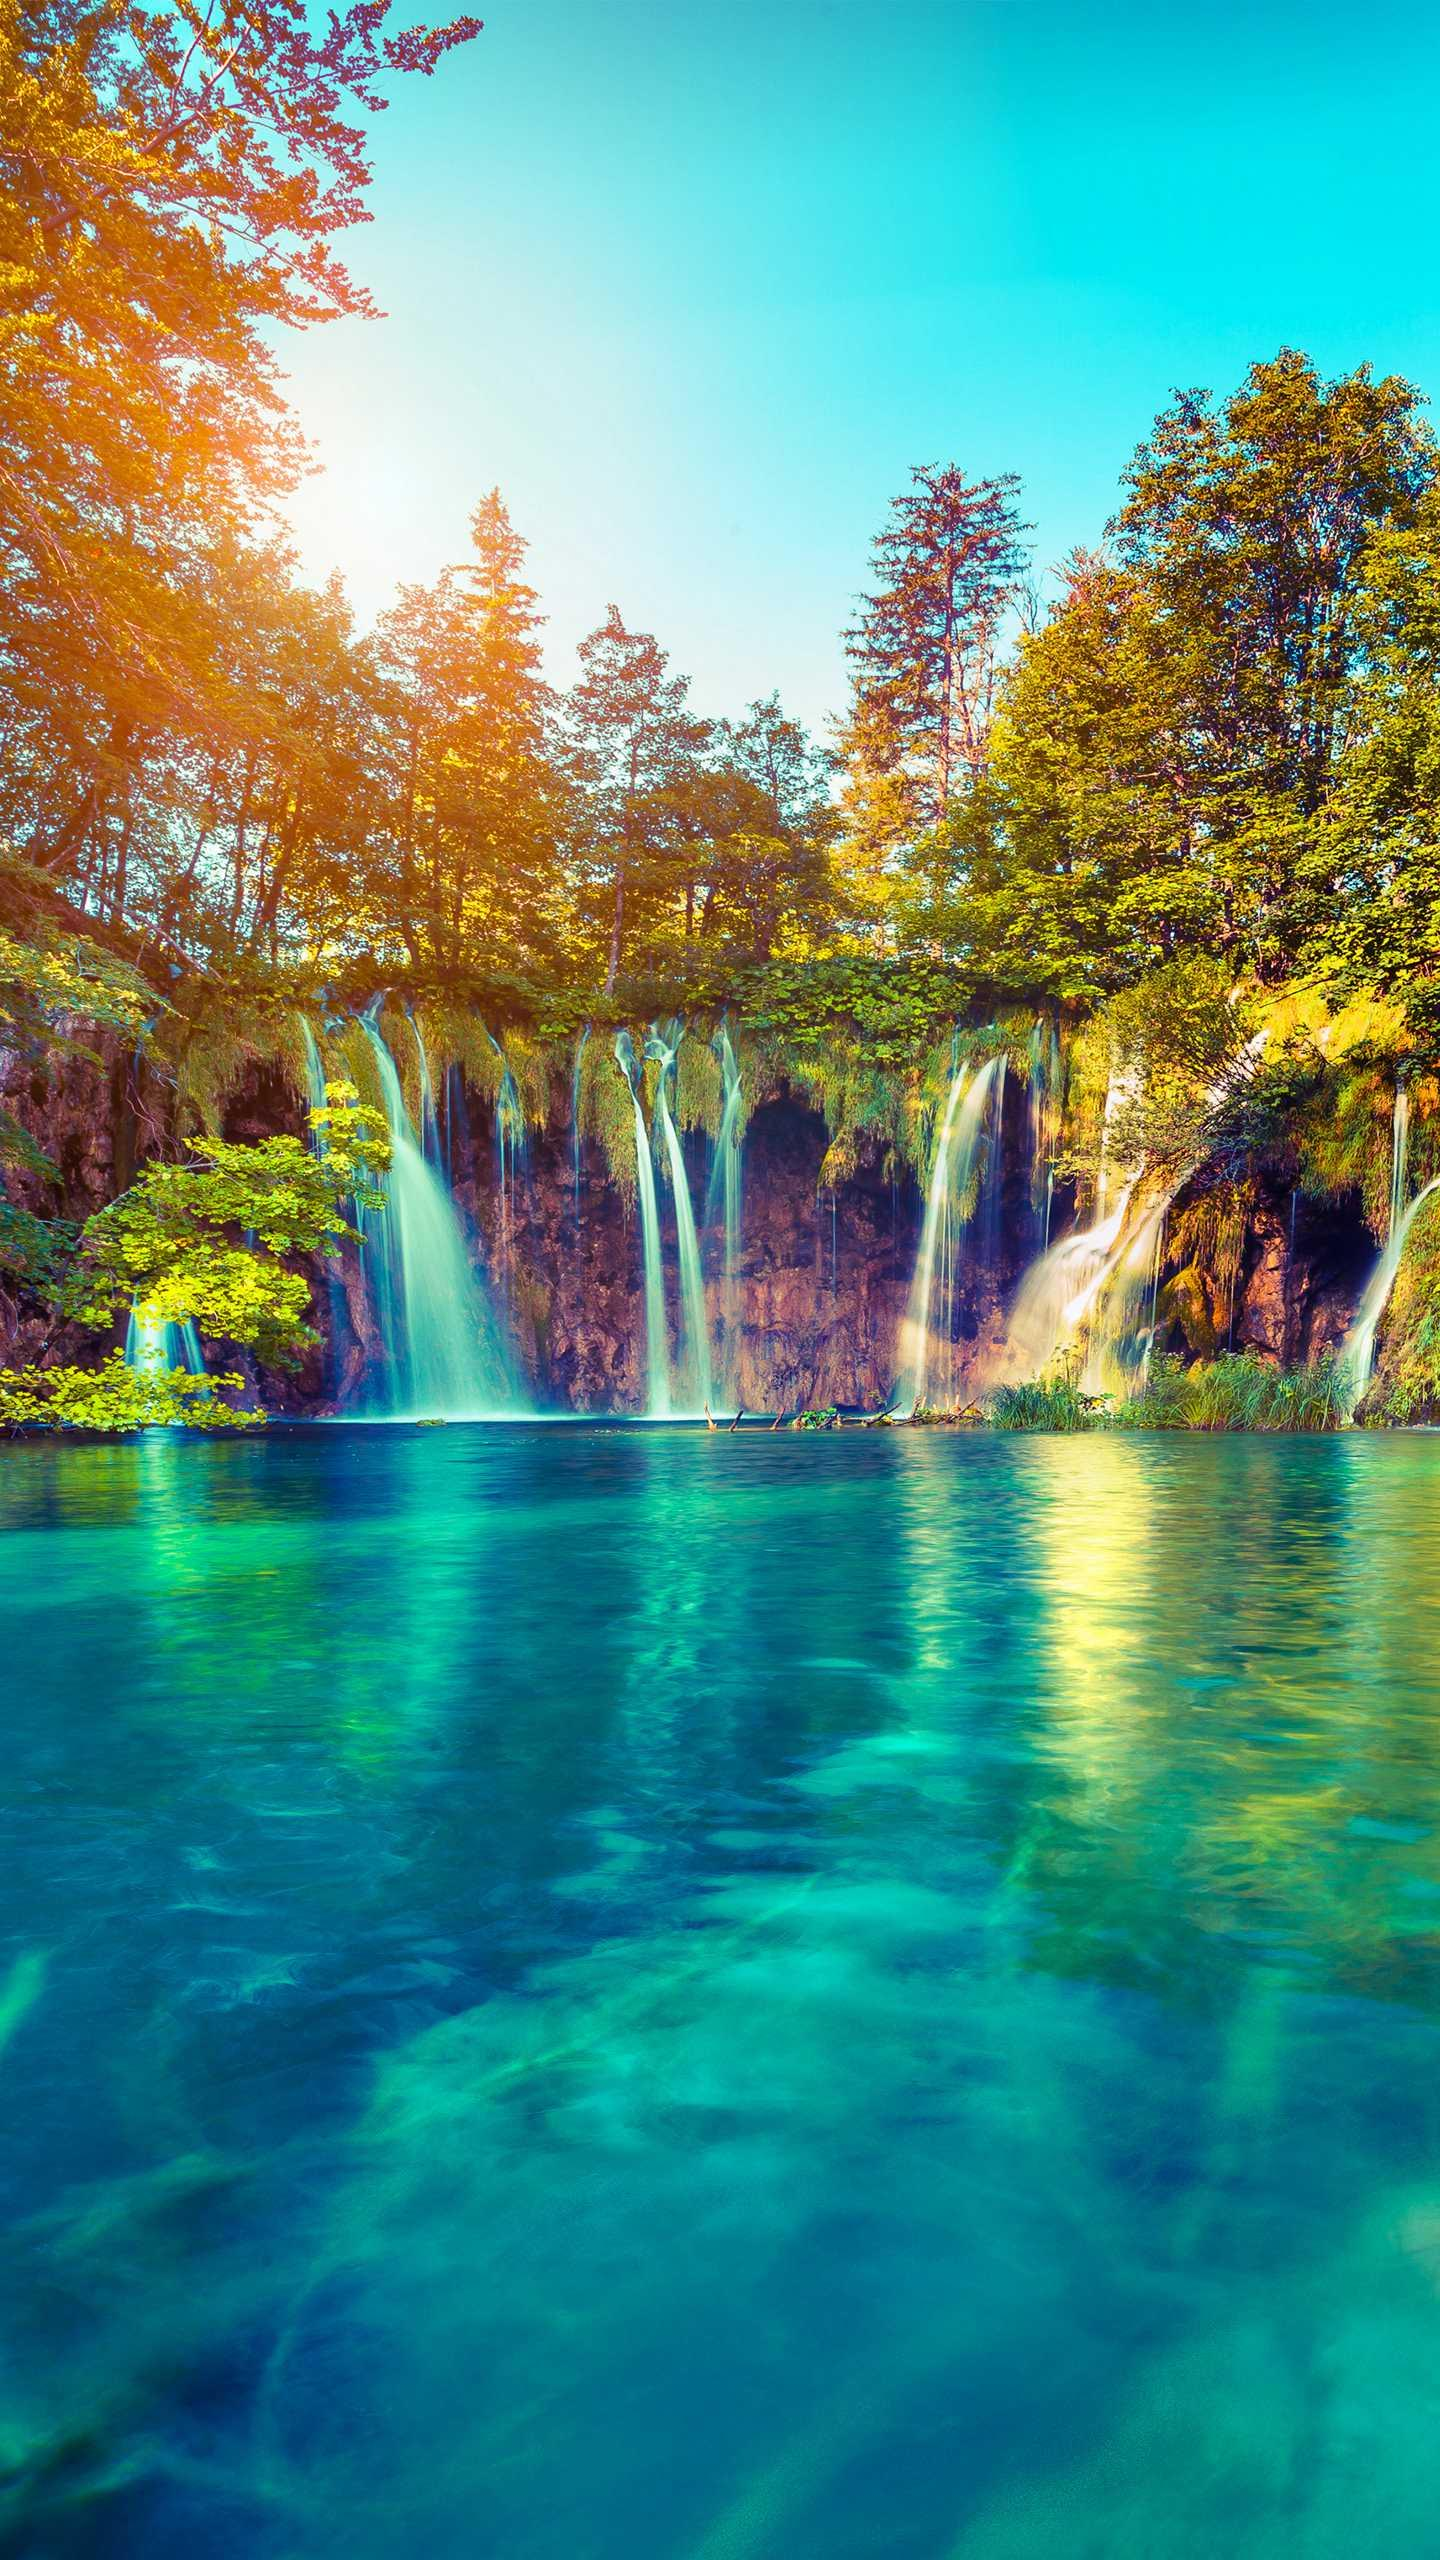 The Plitvice Lakes National Park in Europe, the most famous, beautiful and largest national park in Croatia.